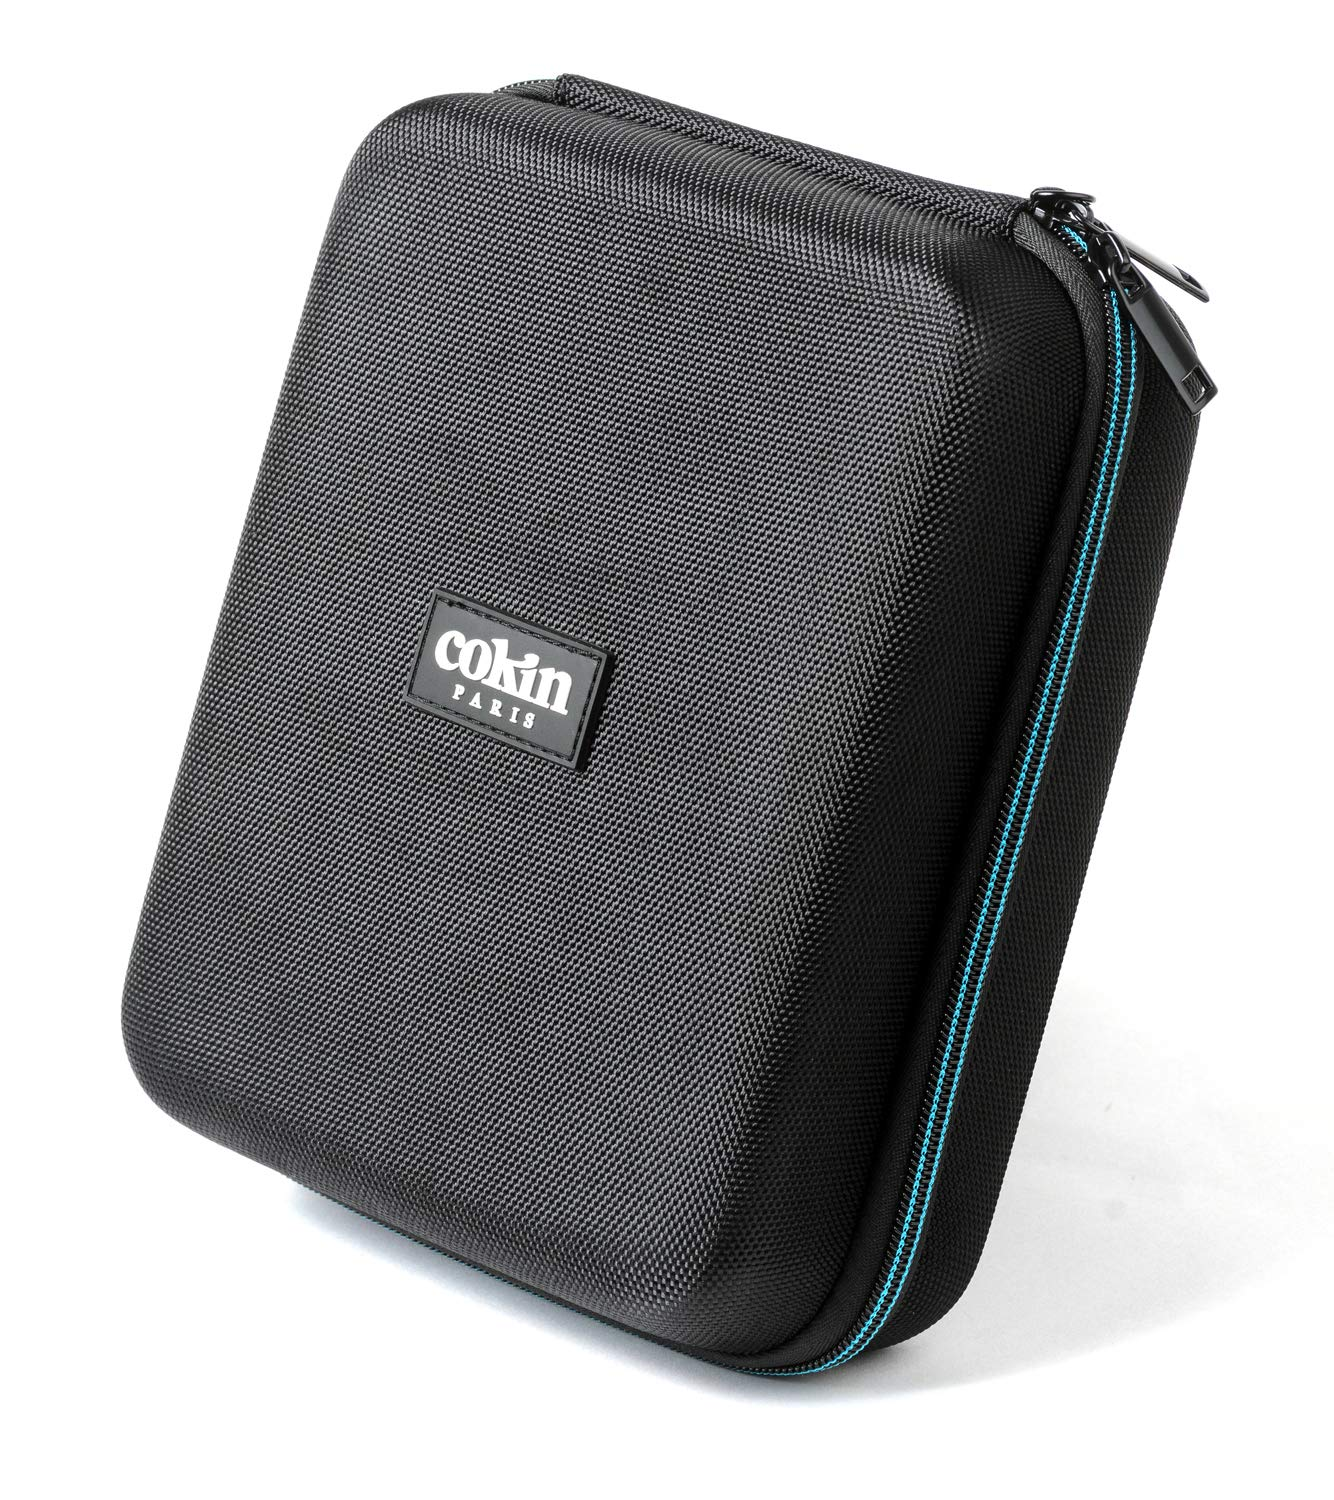 Cokin Filter Wallet - Holds 5 Filters for The XL (X) Series or Smaller by Cokin